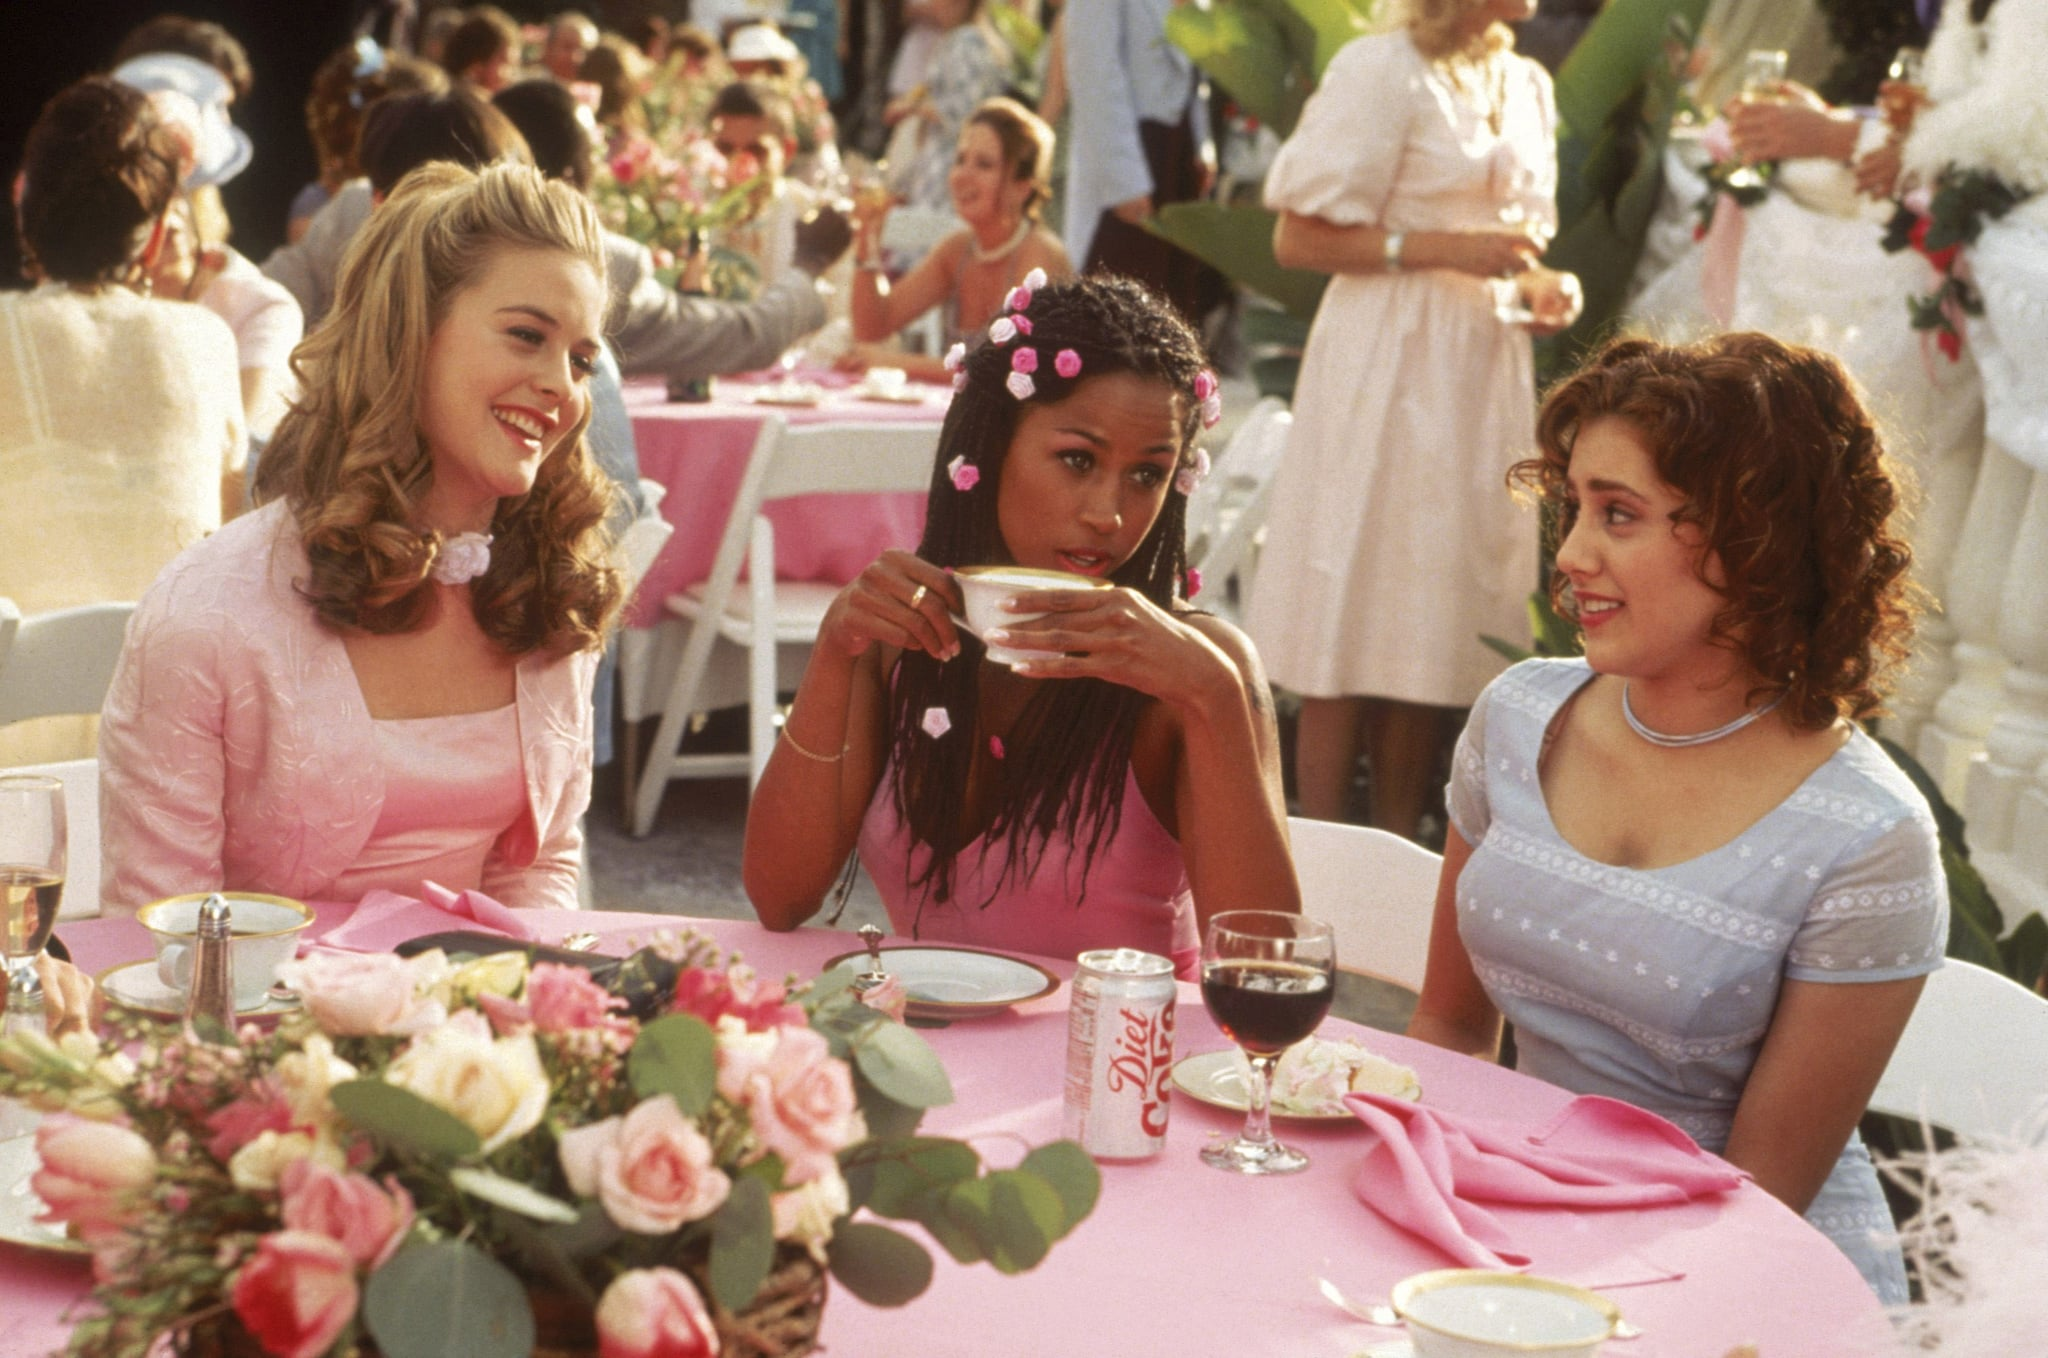 CLUELESS, Alicia Silverstone, Stacey Dash, Brittany Murphy, 1995, (c) Paramount/courtesy Everett Collection